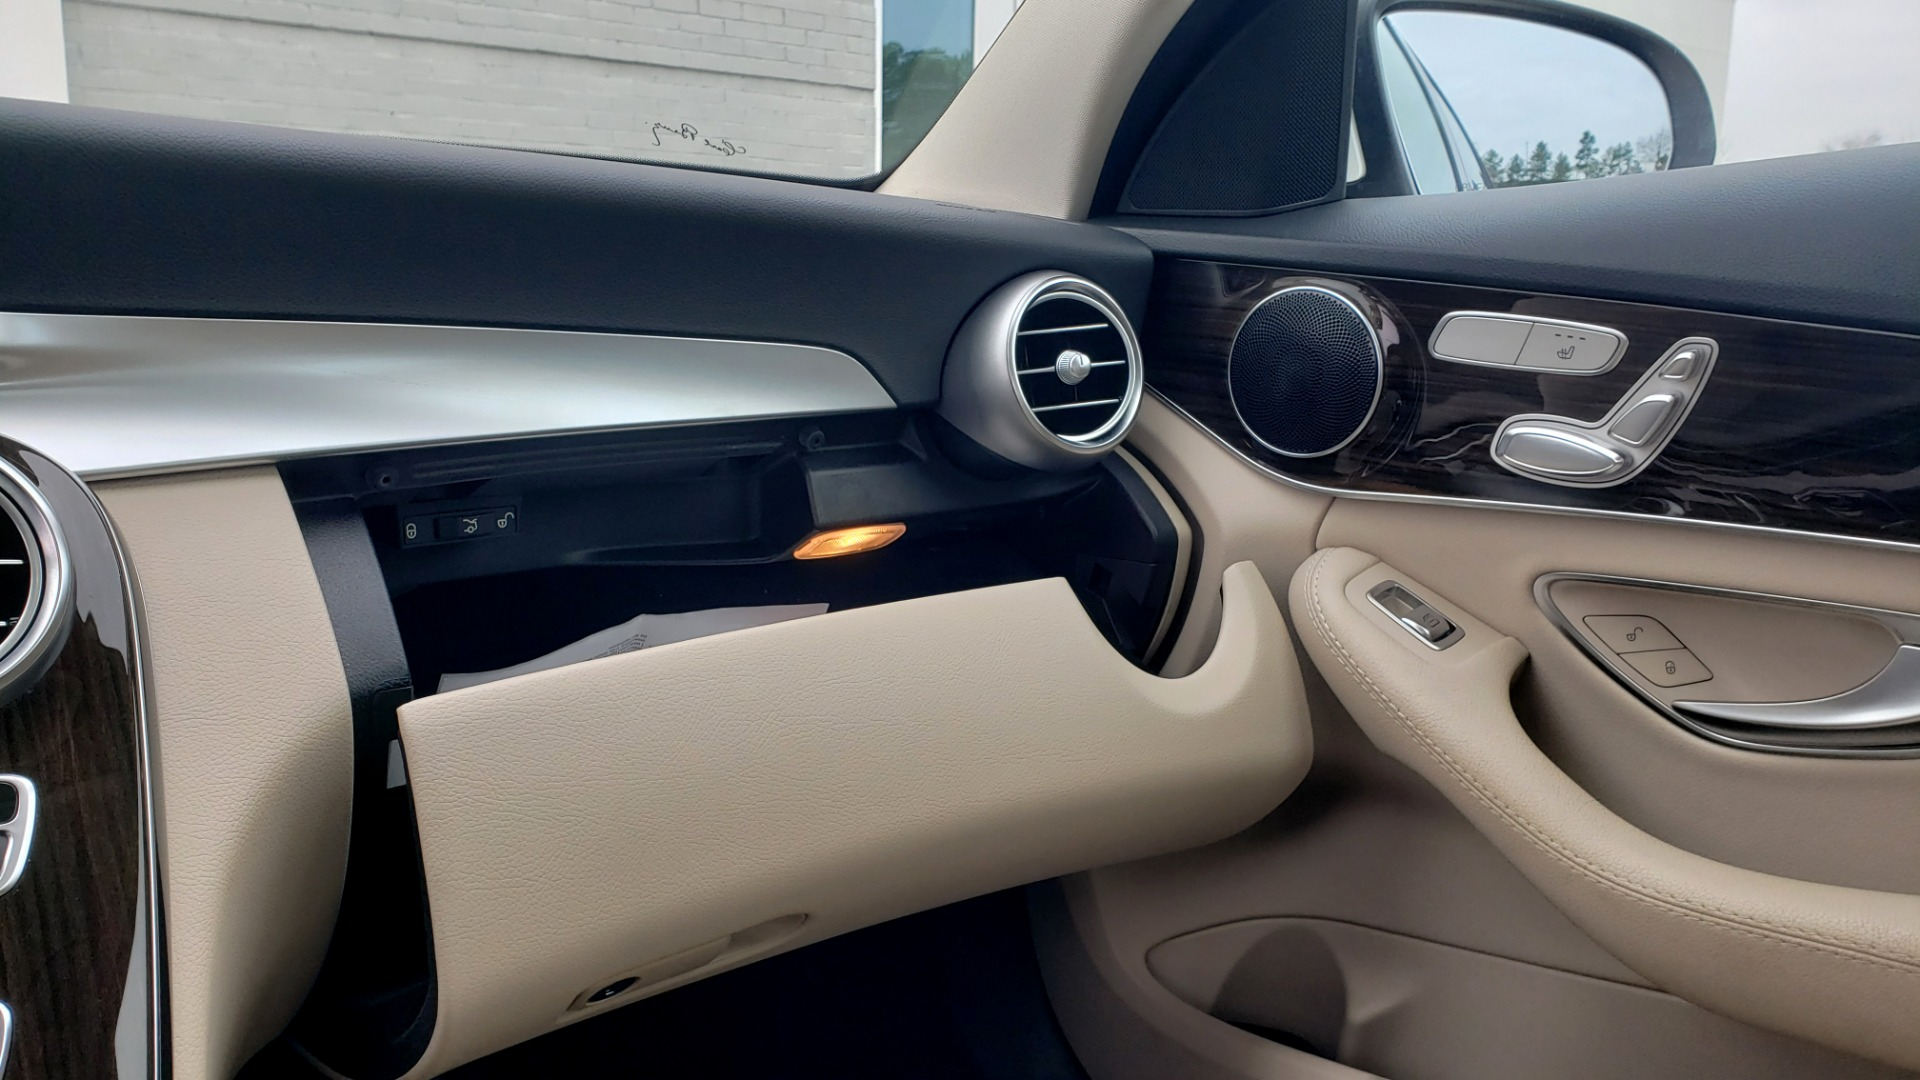 Used 2018 Mercedes-Benz C-CLASS C 300 PREMIUM / NAV / HTD STS / APPLE CARPLAY / REARVIEW for sale Sold at Formula Imports in Charlotte NC 28227 50